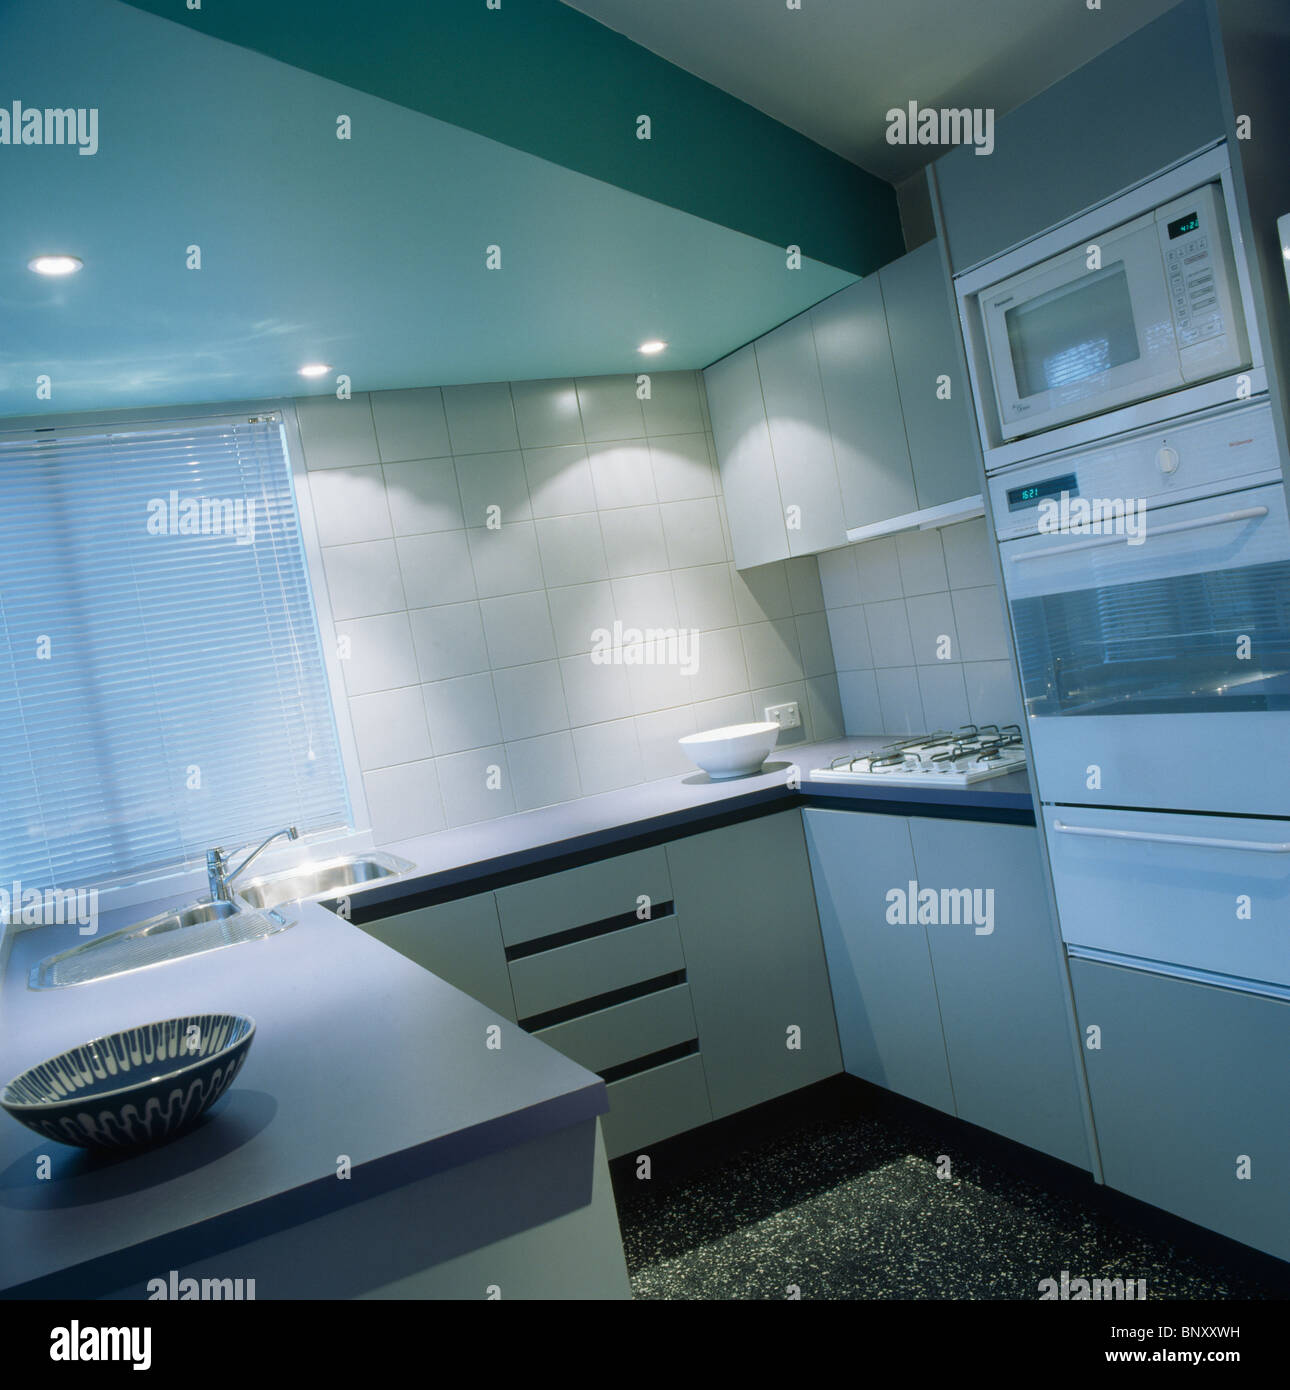 Recessed lighting and white tiled splash-back in modern pastel blue kitchen with wall-mounted double oven - Stock Image